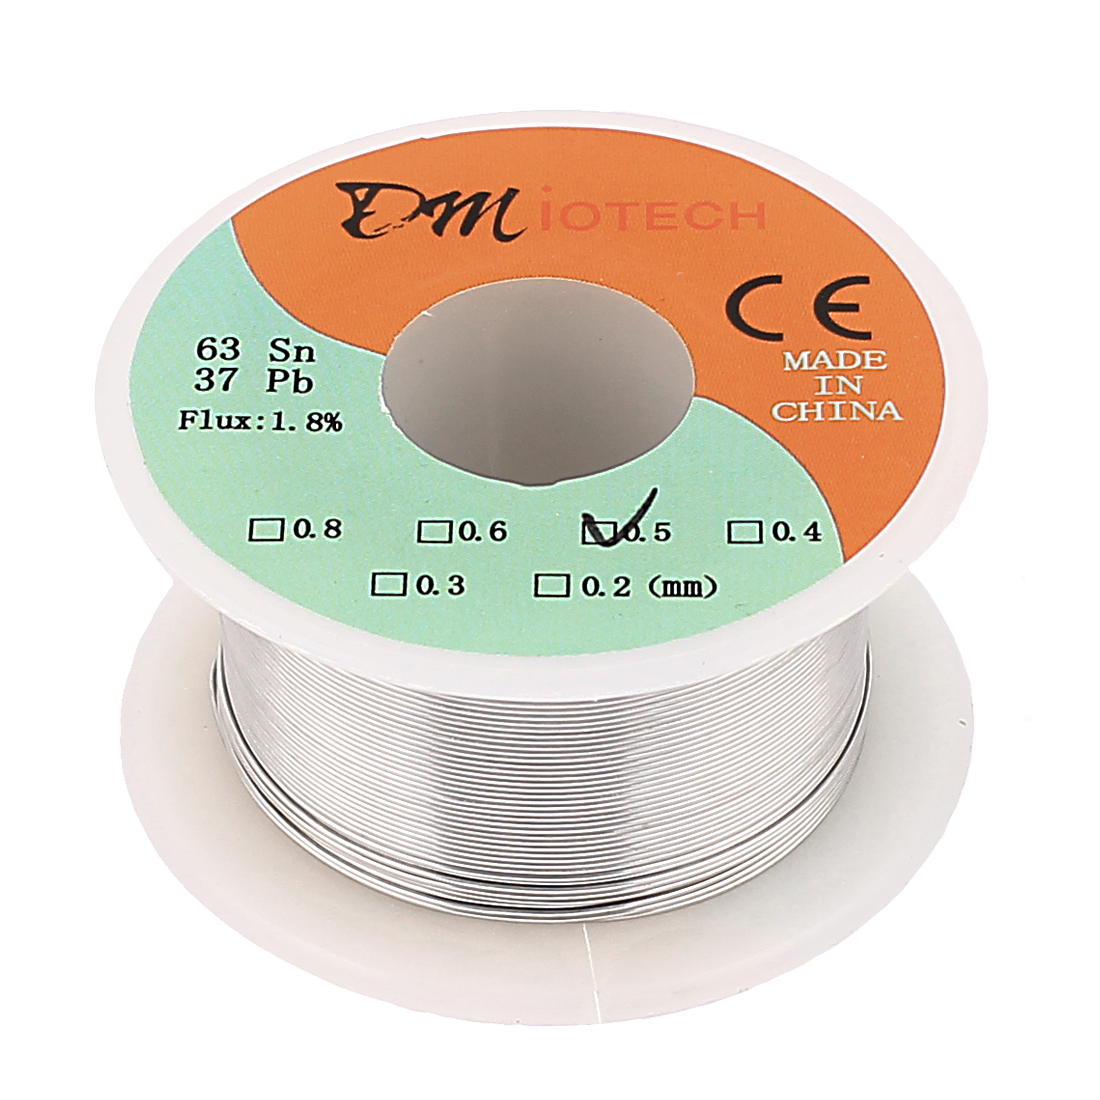 0.5mm 35G 63/37 Rosin Core Flux 1.8% Tin Lead Roll Soldering Solder Wire